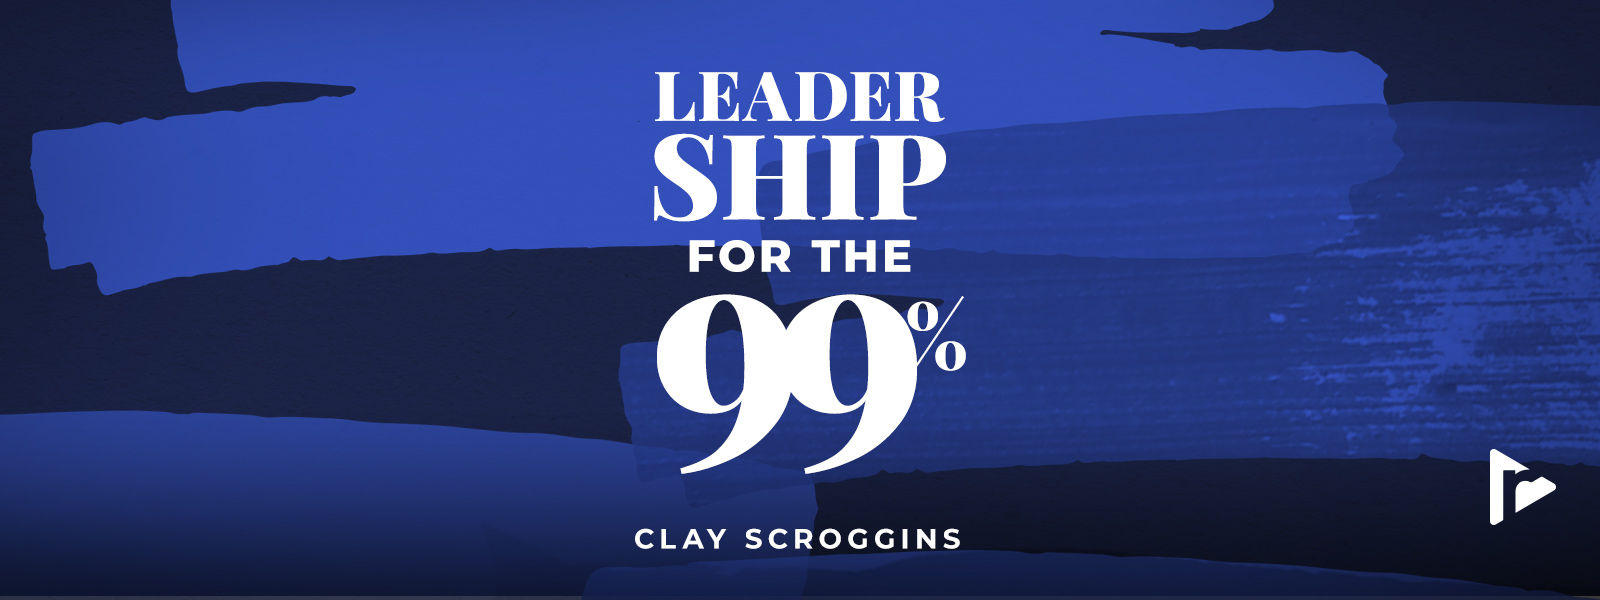 Leadership for the 99%